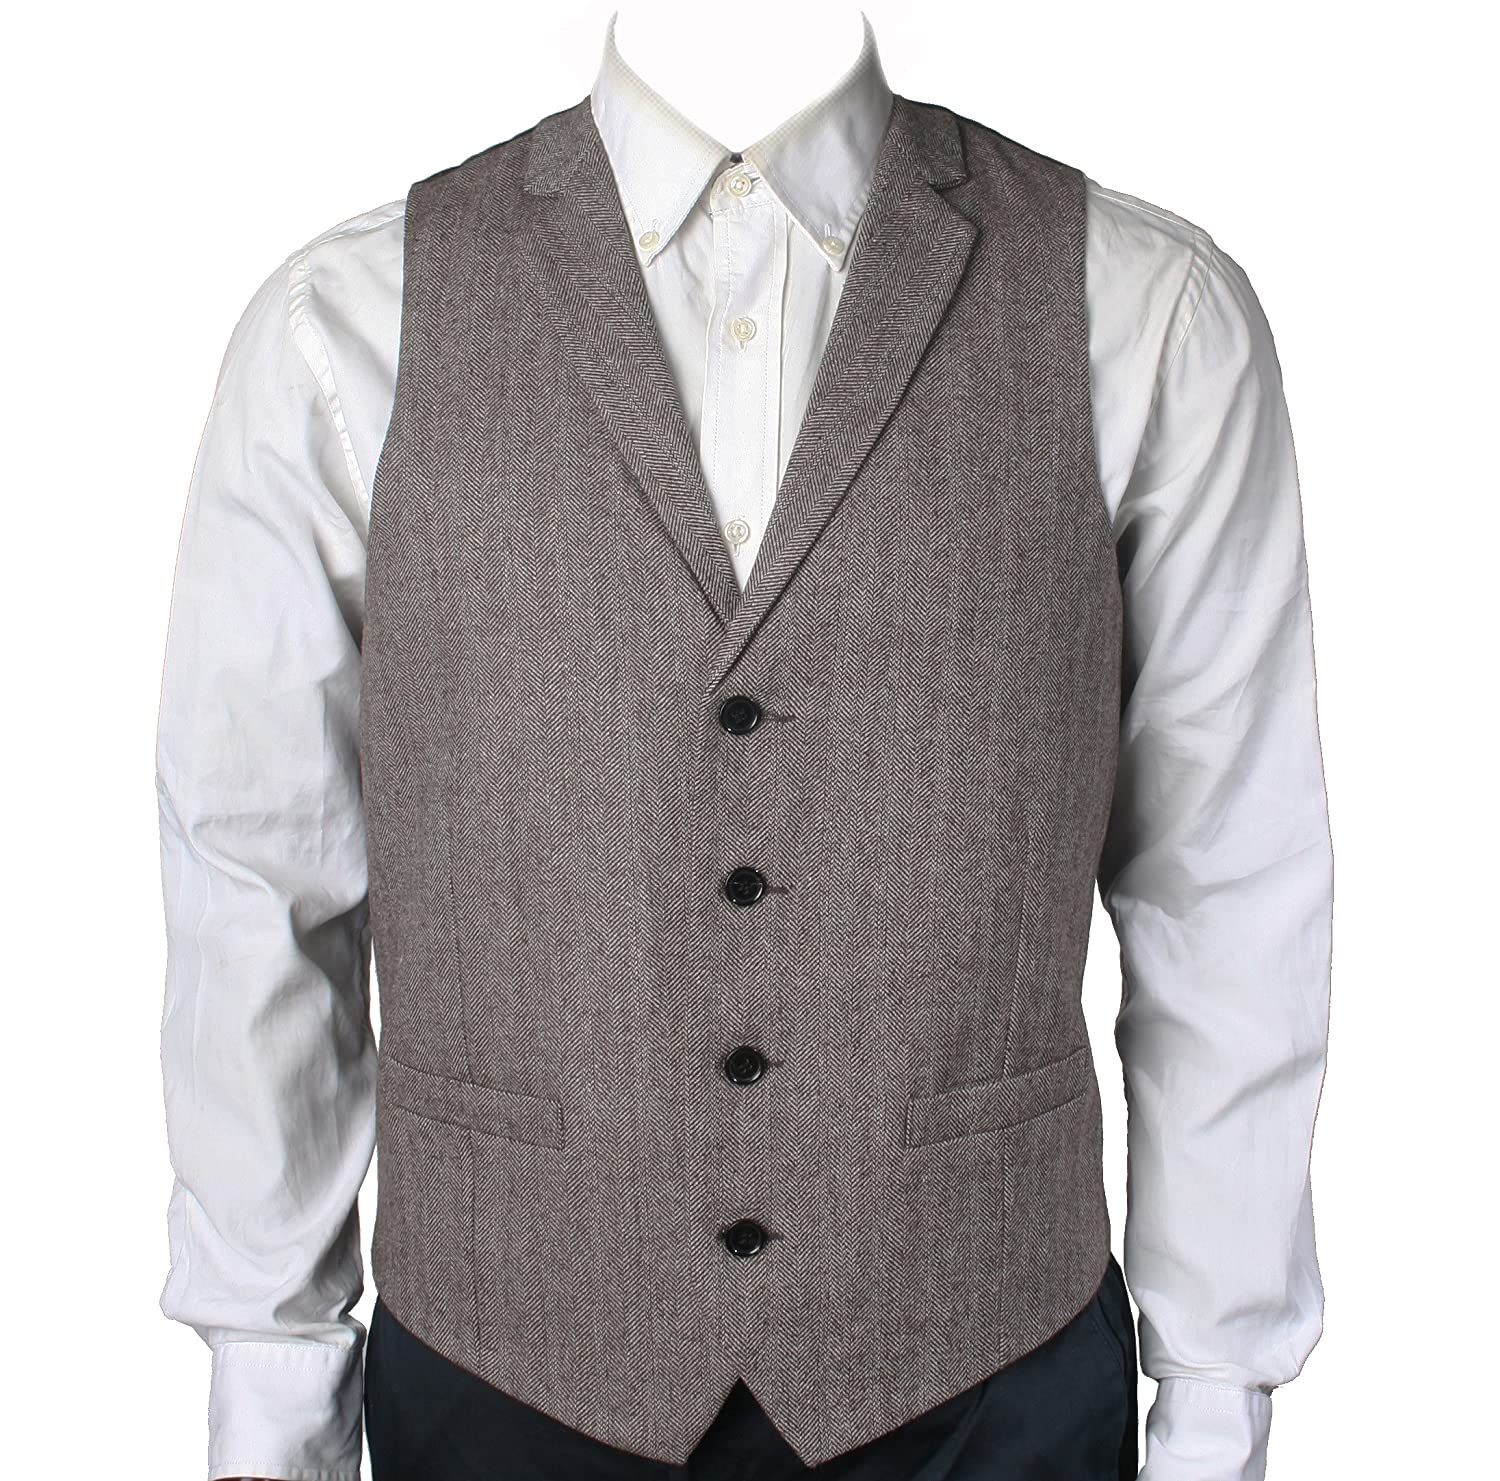 Men's Steampunk Clothing, Costumes, Fashion Herringbone/Tweed Tailored Collar Suit Vest $37.00 AT vintagedancer.com